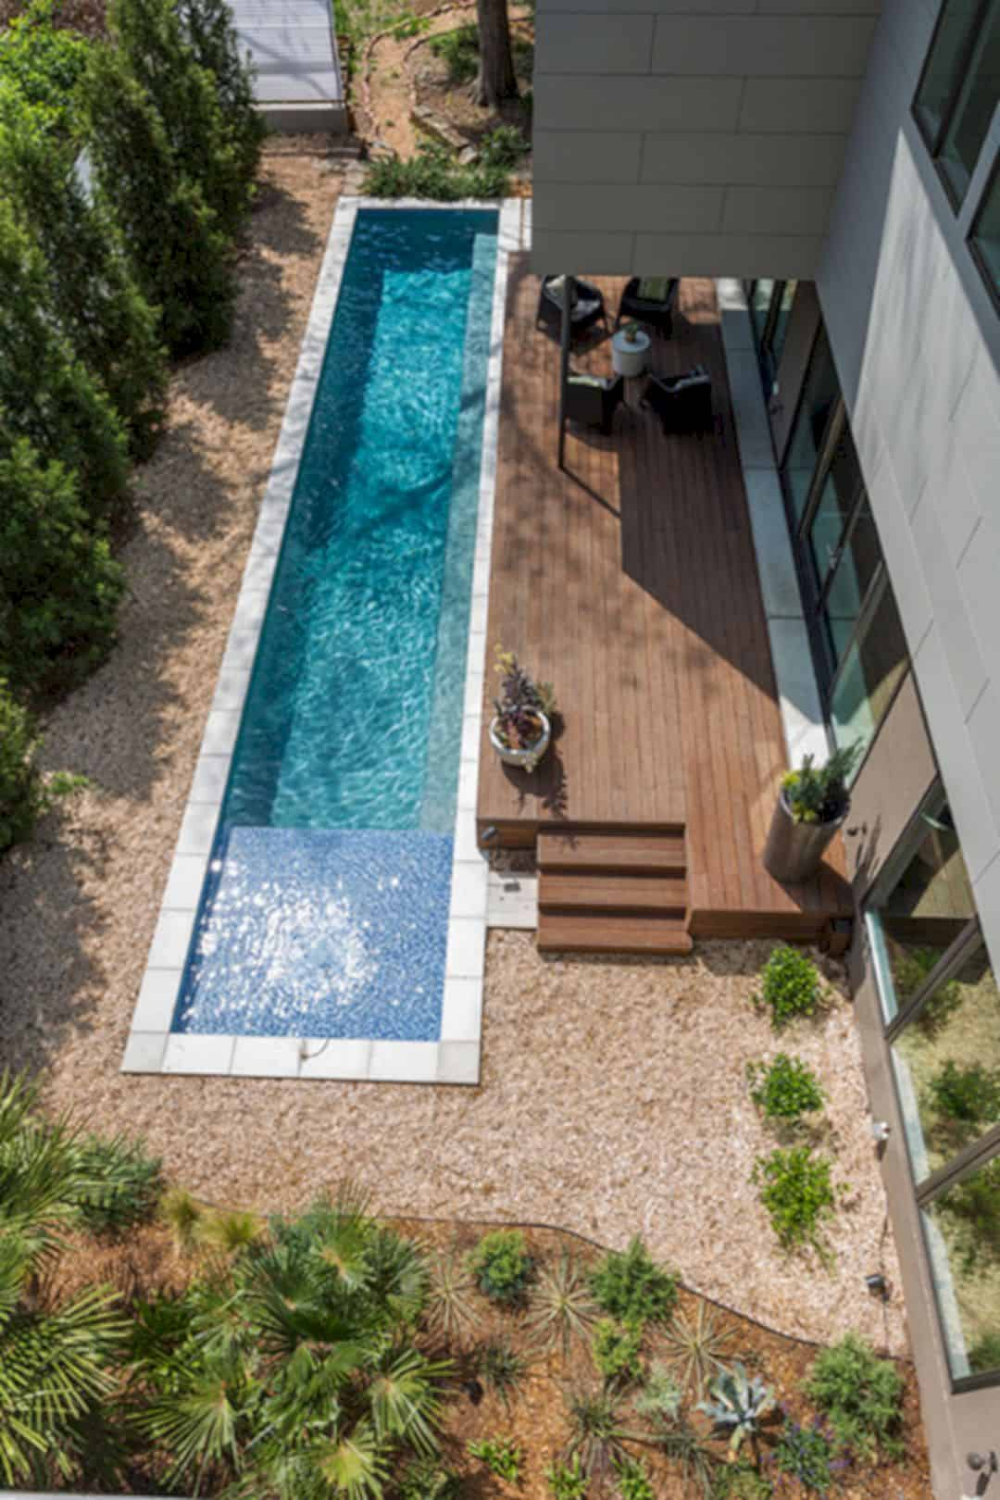 Coolest Small Pool Ideas with 9 Basic Preparation Tips is part of Small backyard pools, Small pool design, Swimming pools backyard, Small backyard design, Backyard pool, Backyard design - It is no question that inground pool is more expensive since it involves soil excavation and removal  However, it delivers a more permanent and luxury feeling than the other type  The aboveground po